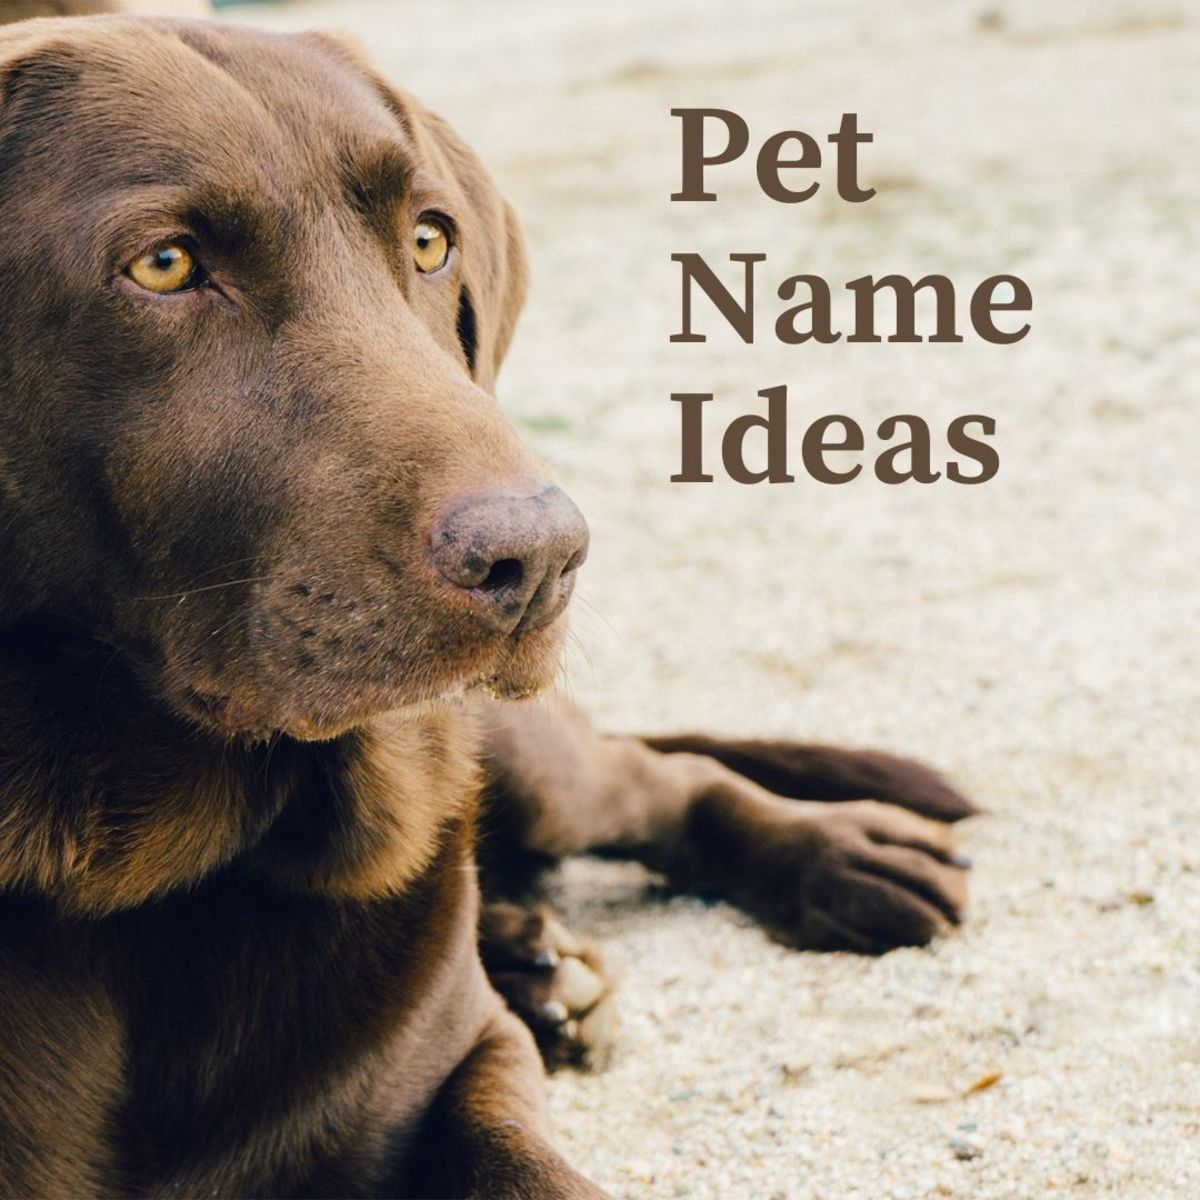 100+ cute name ideas for your pet or stuffed animal